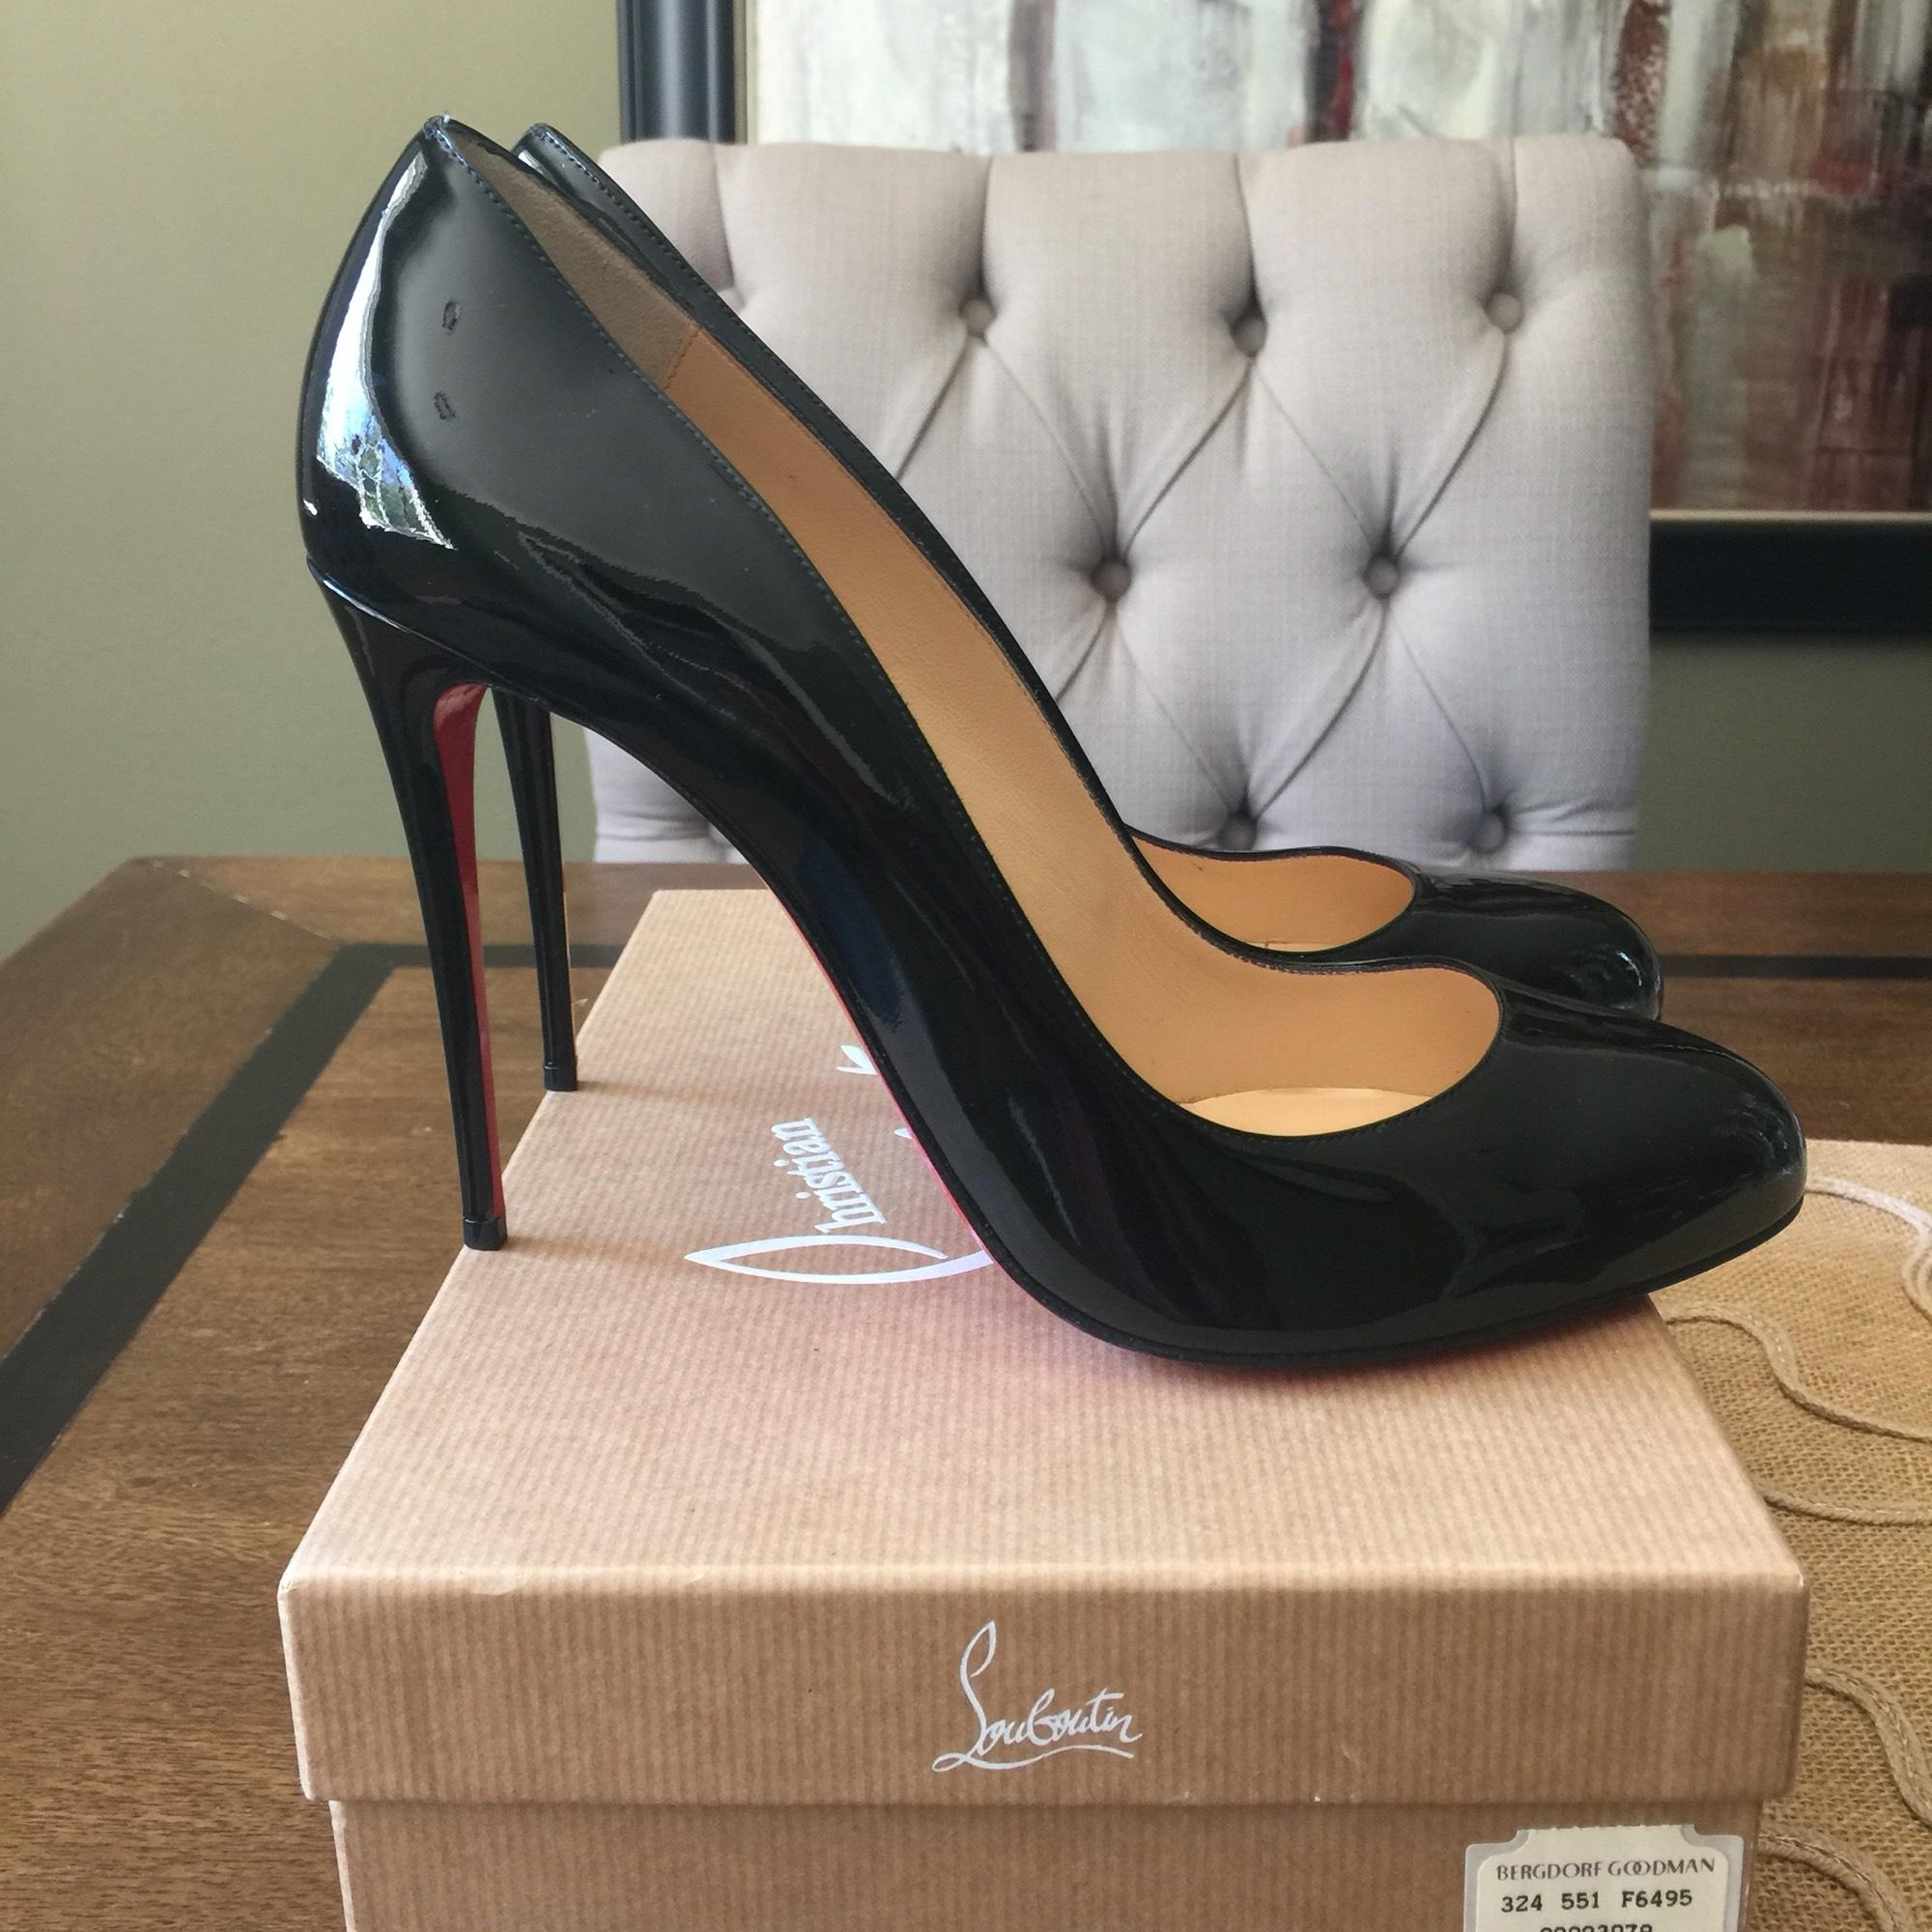 separation shoes db749 d2261 wholesale christian louboutin tsar pumps for sale toronto ...